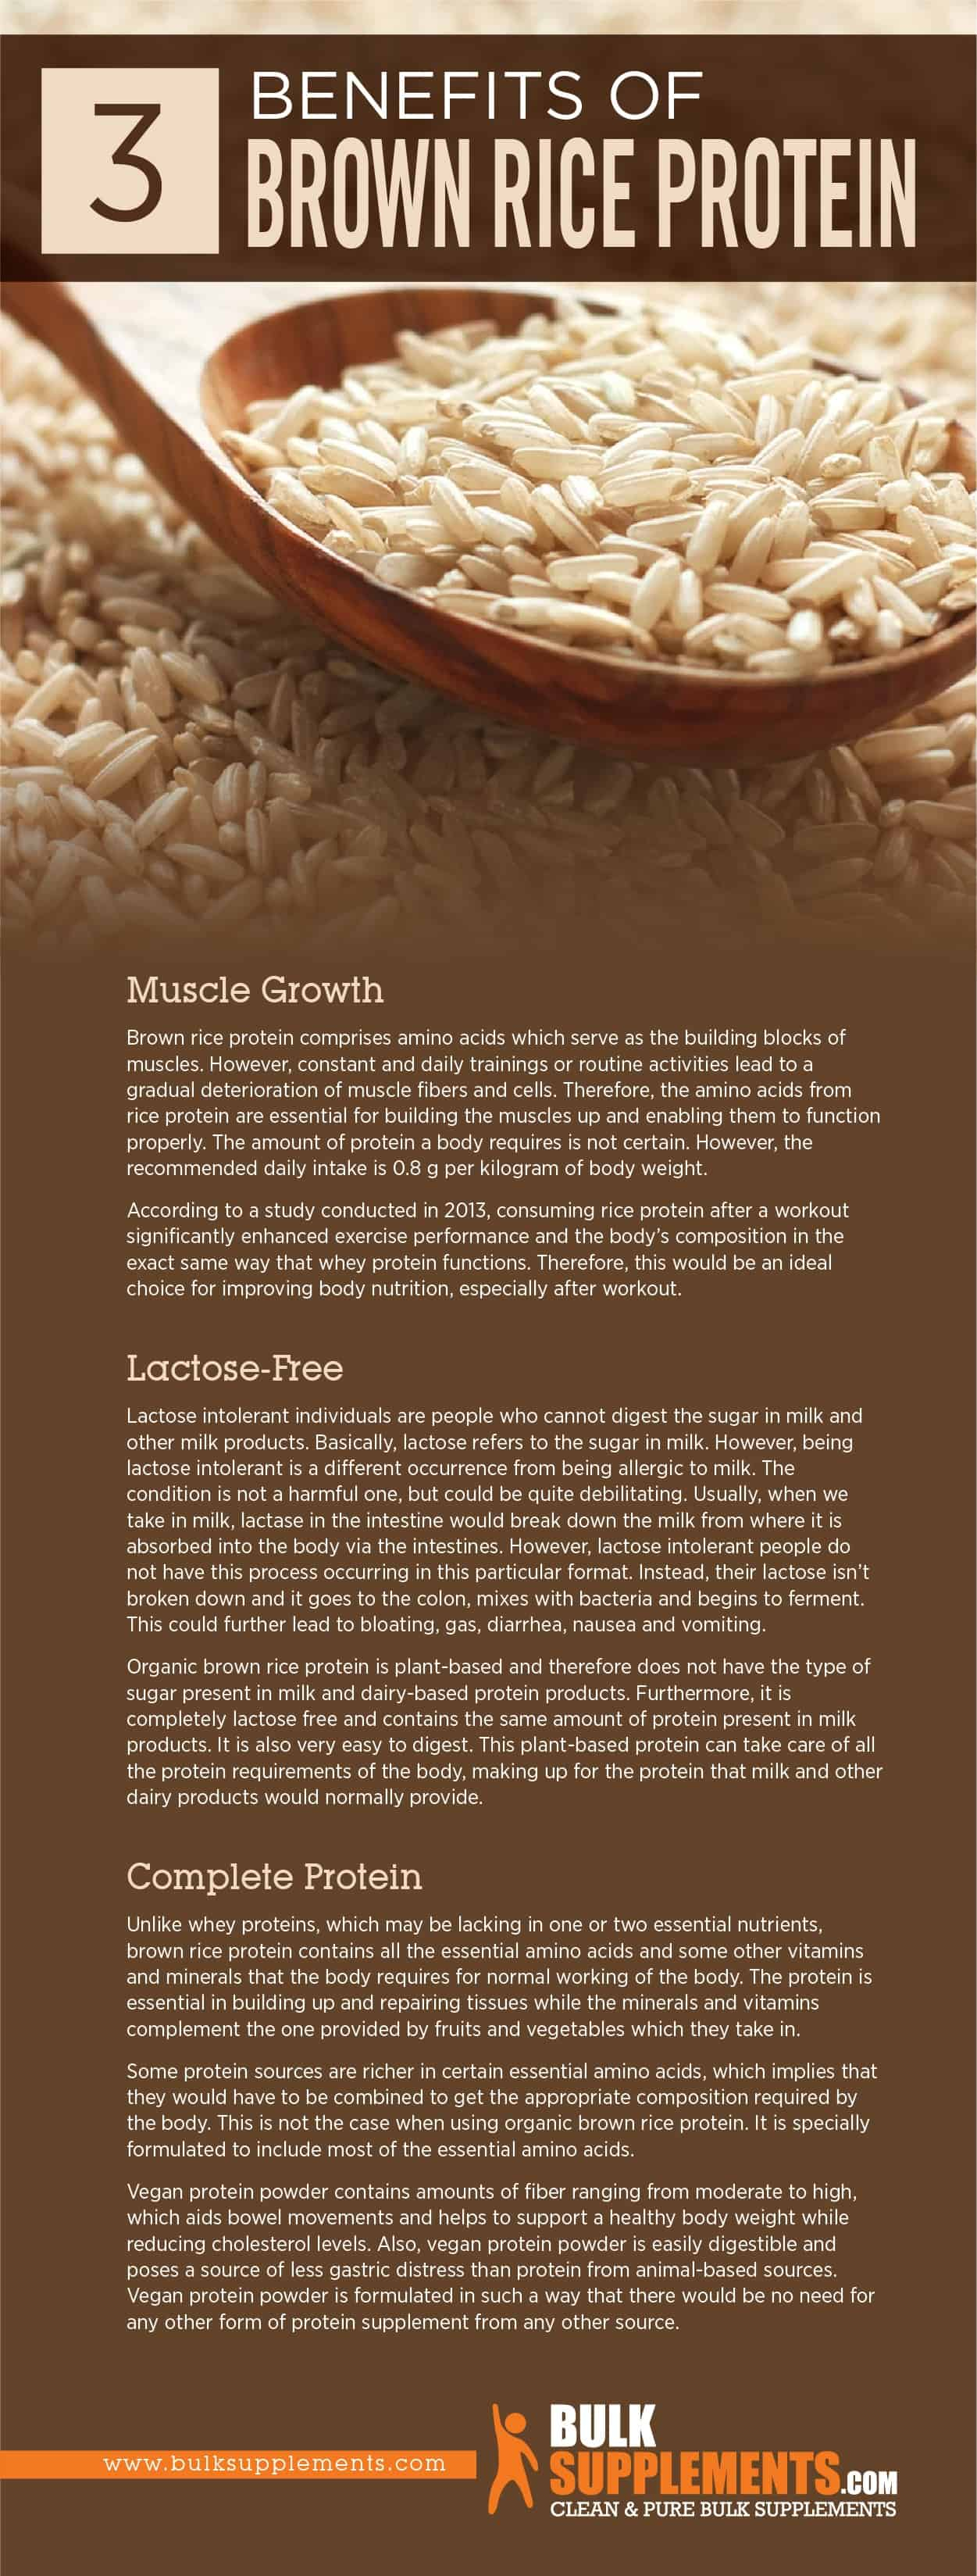 Brown Rice Protein Benefits